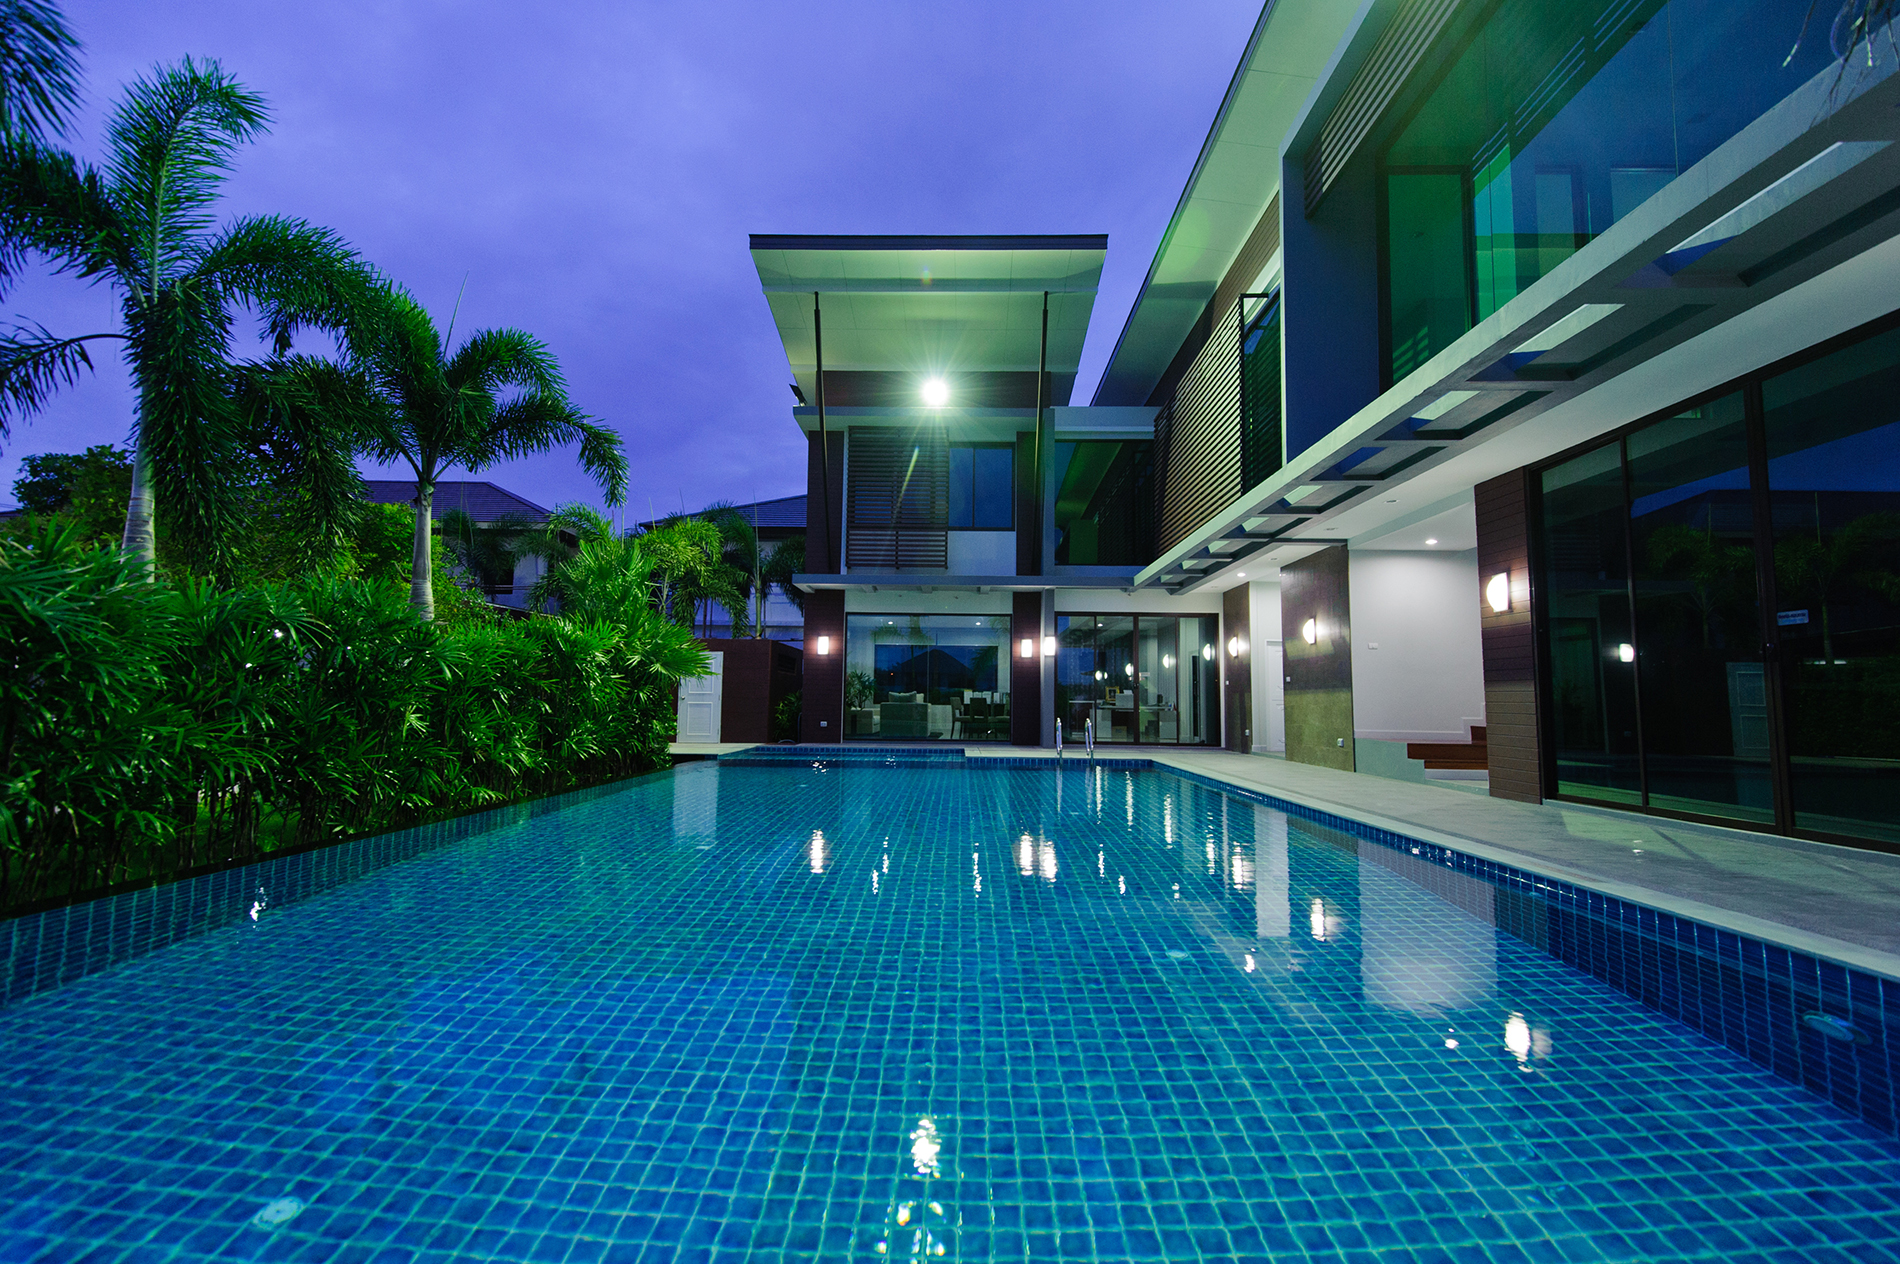 The pool at night under the lights 53561